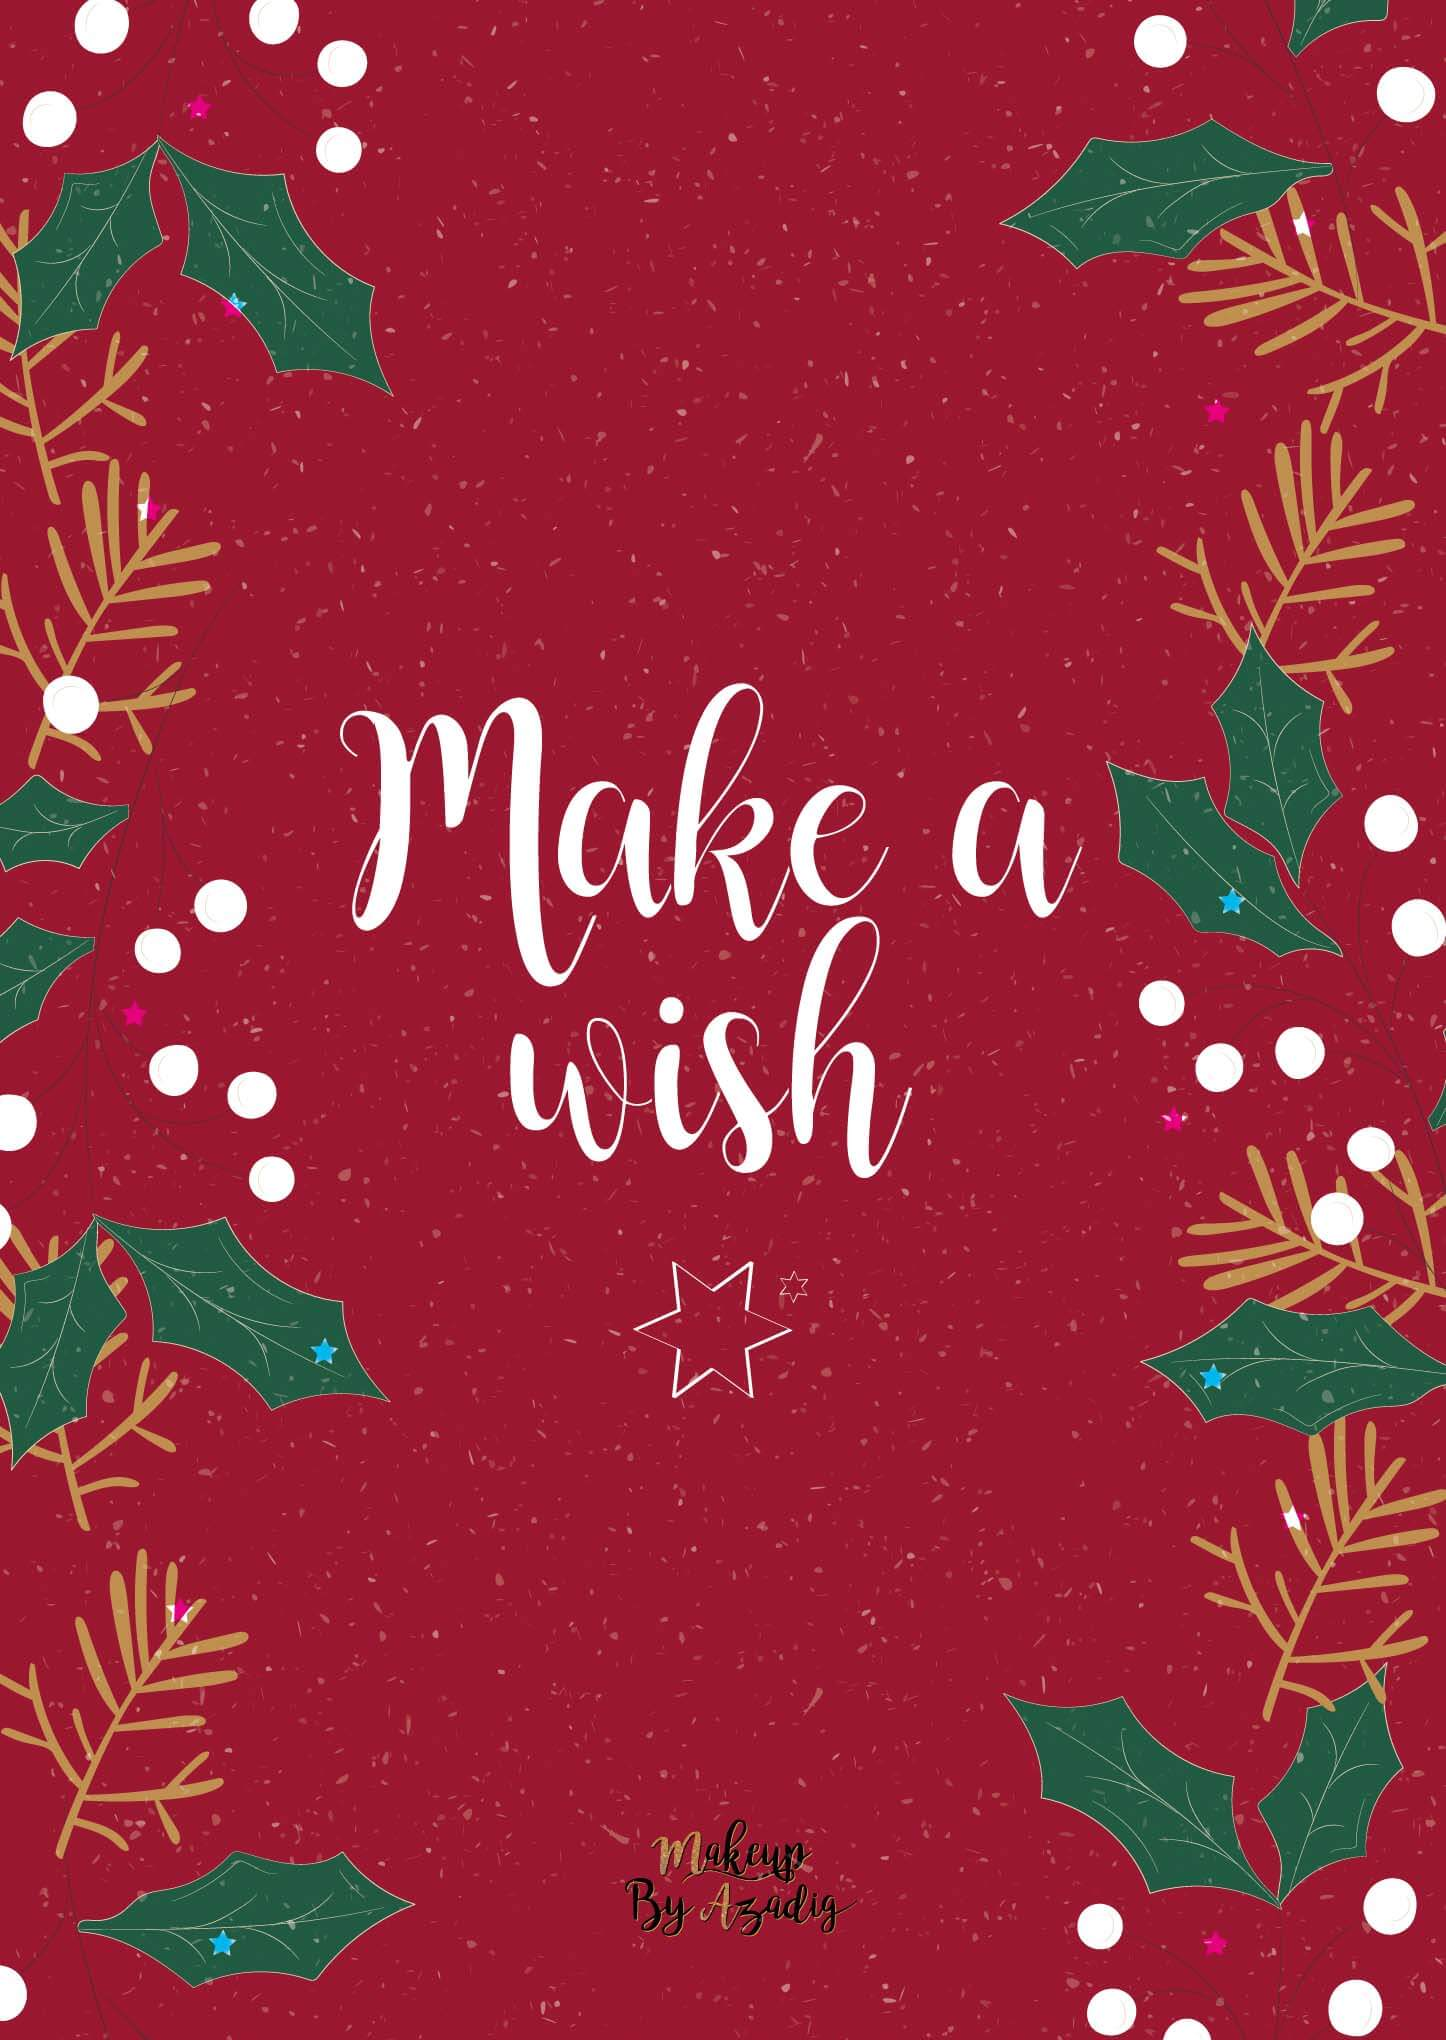 fond-decran-wallpaper-christmas-noel-make-a-wish-ipad-tablette-apple-makeupbyazadig-tendance